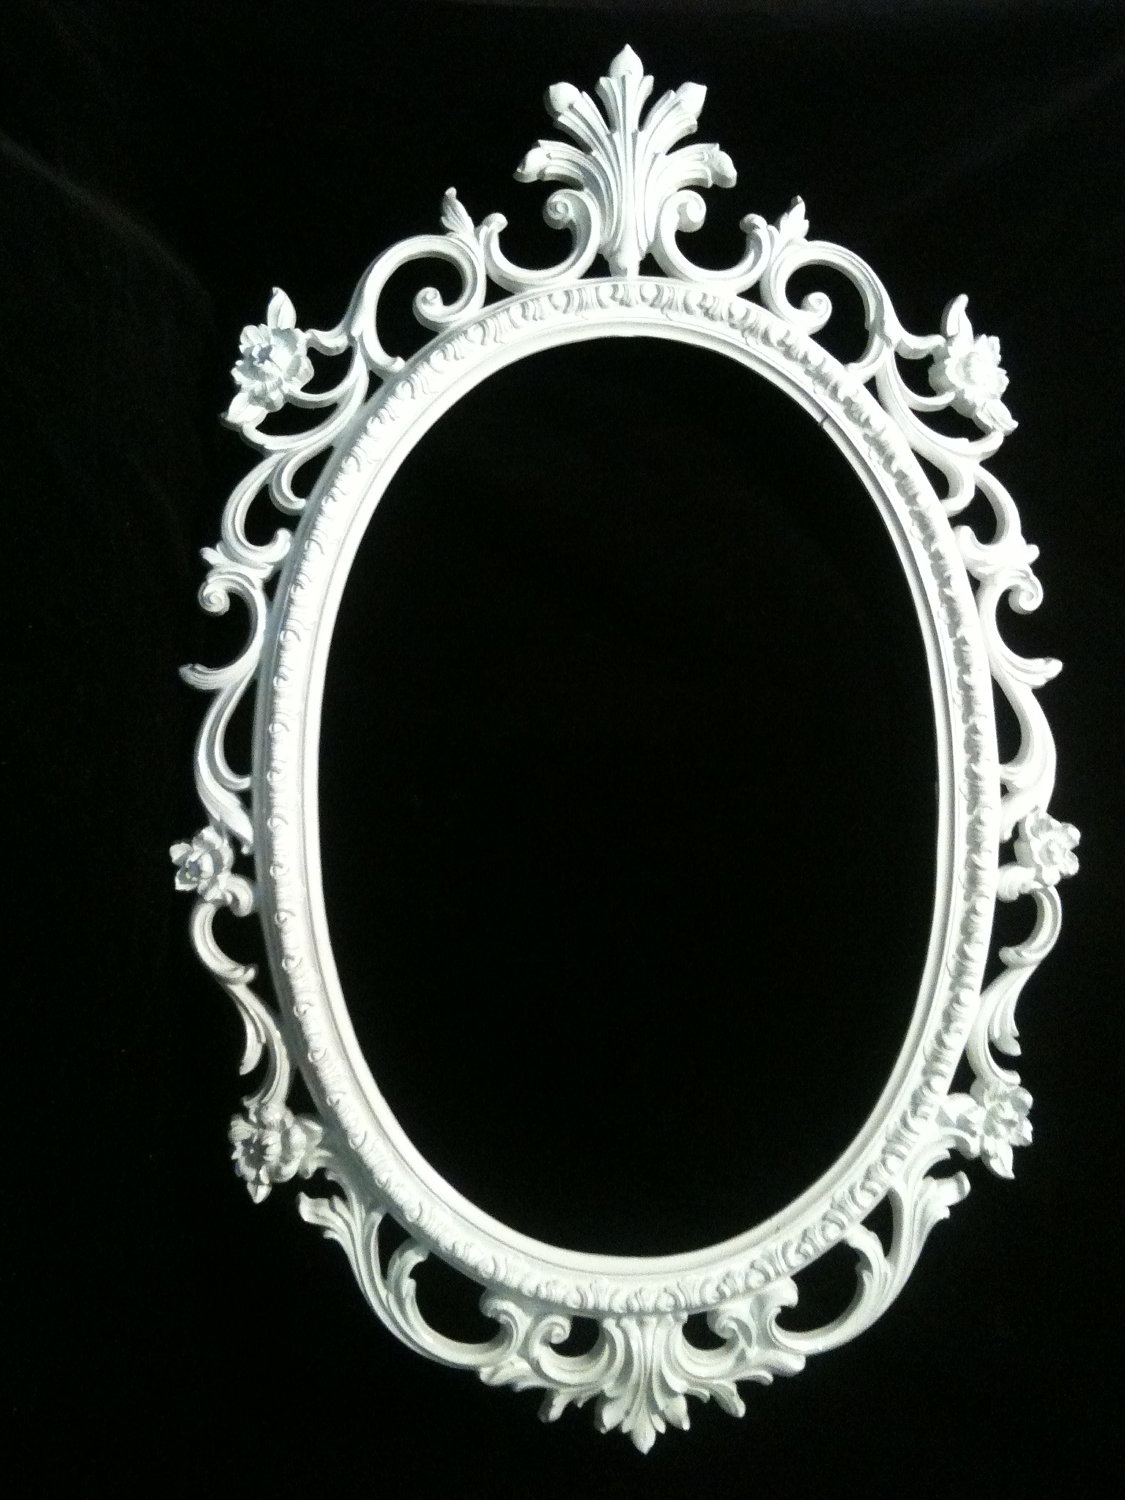 Gloss White Oval Picture Frame Mirror Shab Chic Baroque Gothic Throughout Baroque Mirror Frame (Image 10 of 15)